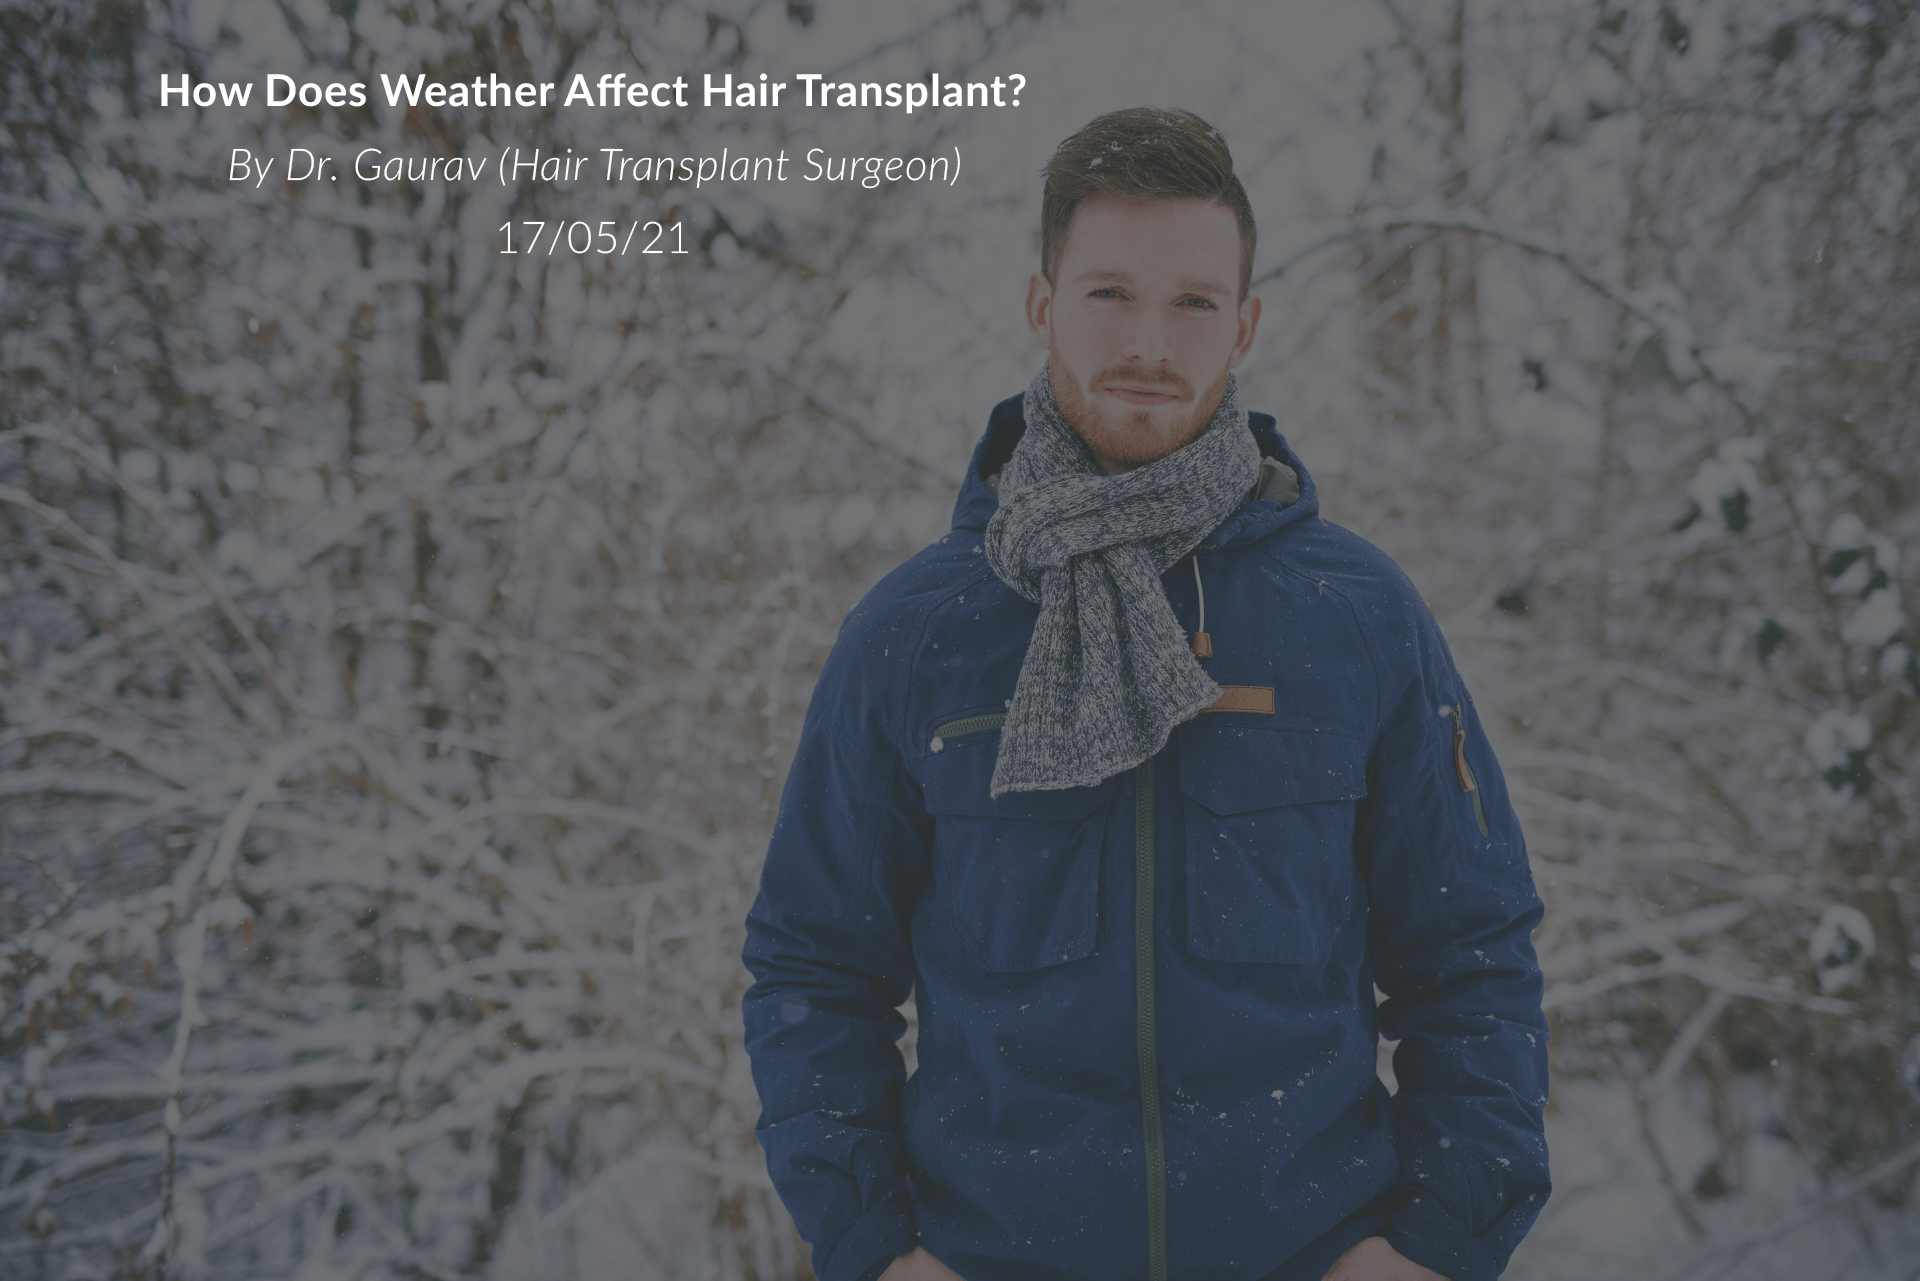 How Does Weather Affect Hair Transplant?